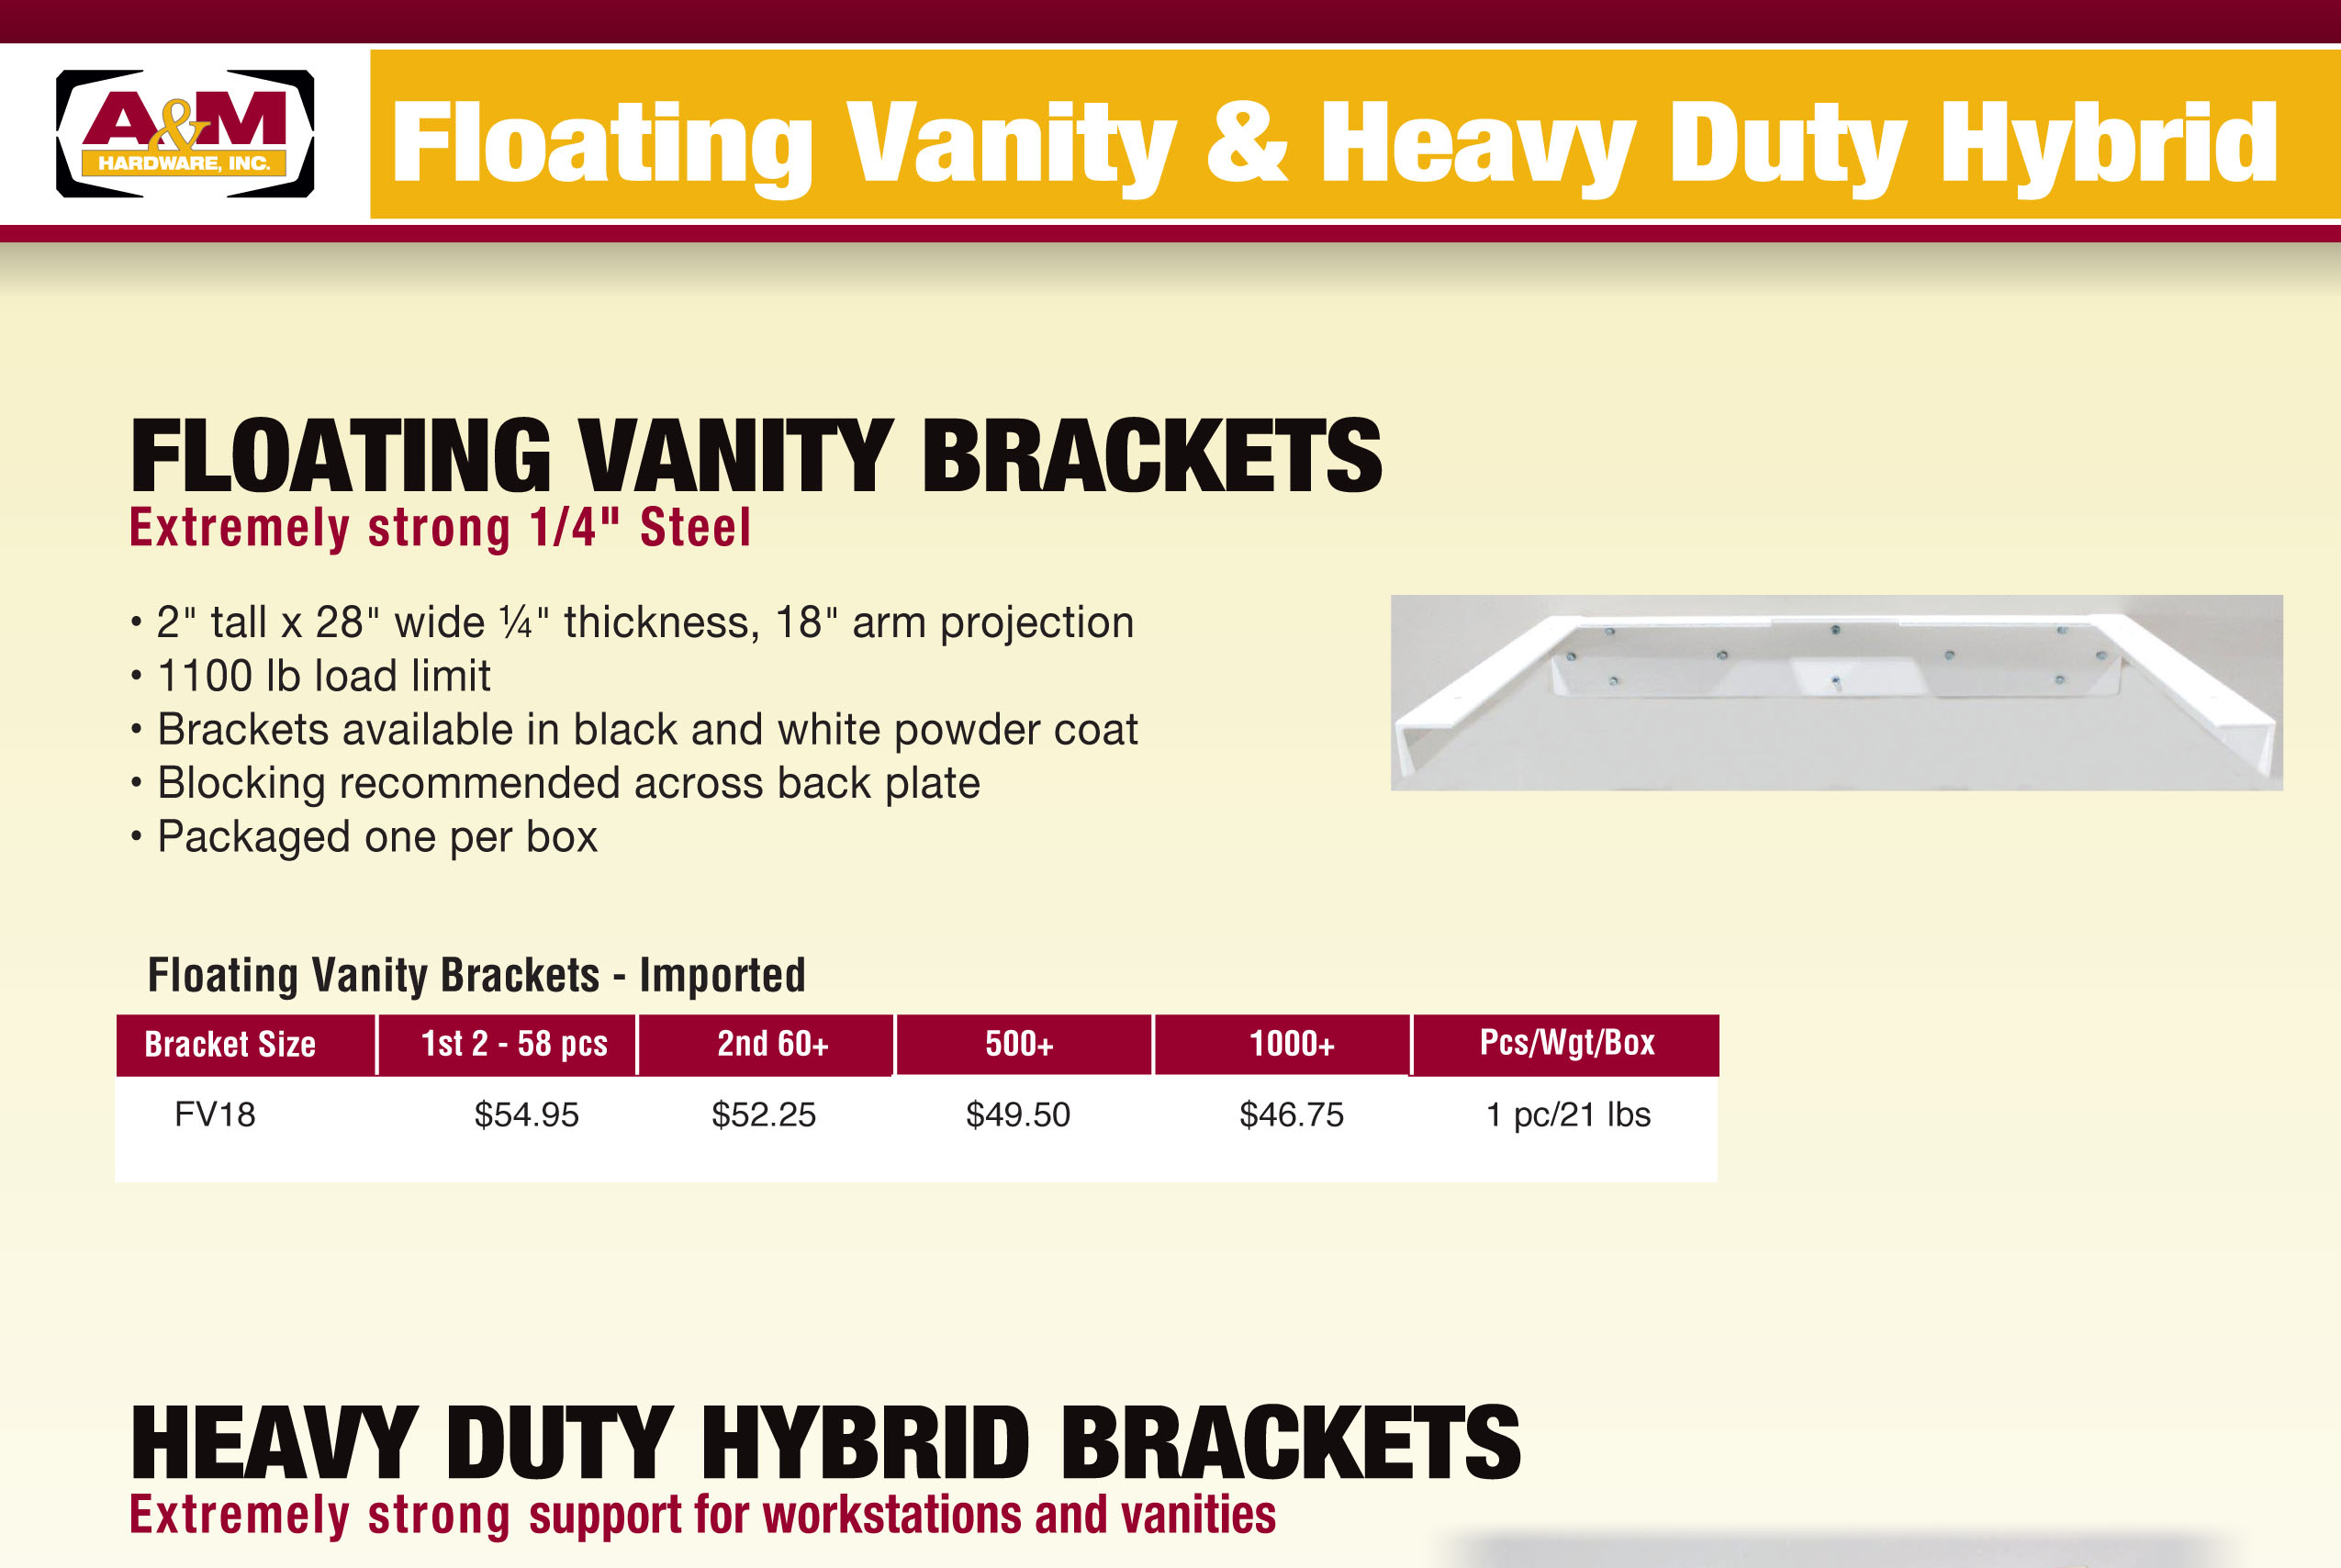 Floating Vanity & Heavy–Duty Hybrid Bracket Price List